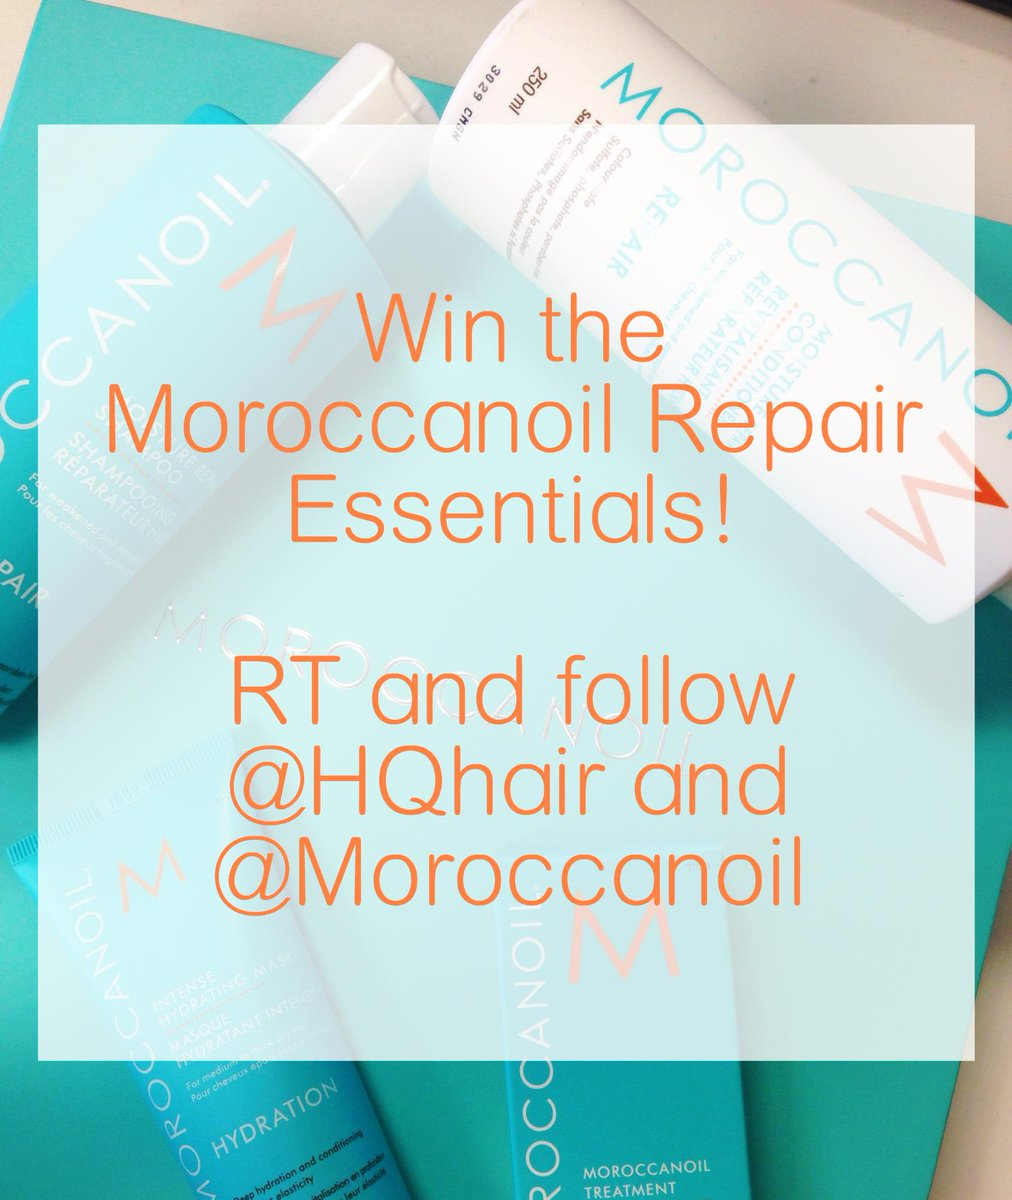 Fancy one more chance to win the @Moroccanoil Repair Essentials? RT and follow @HQhair & @Moroccanoil #HQxMoroccanoil http://t.co/9rpkc49G7N